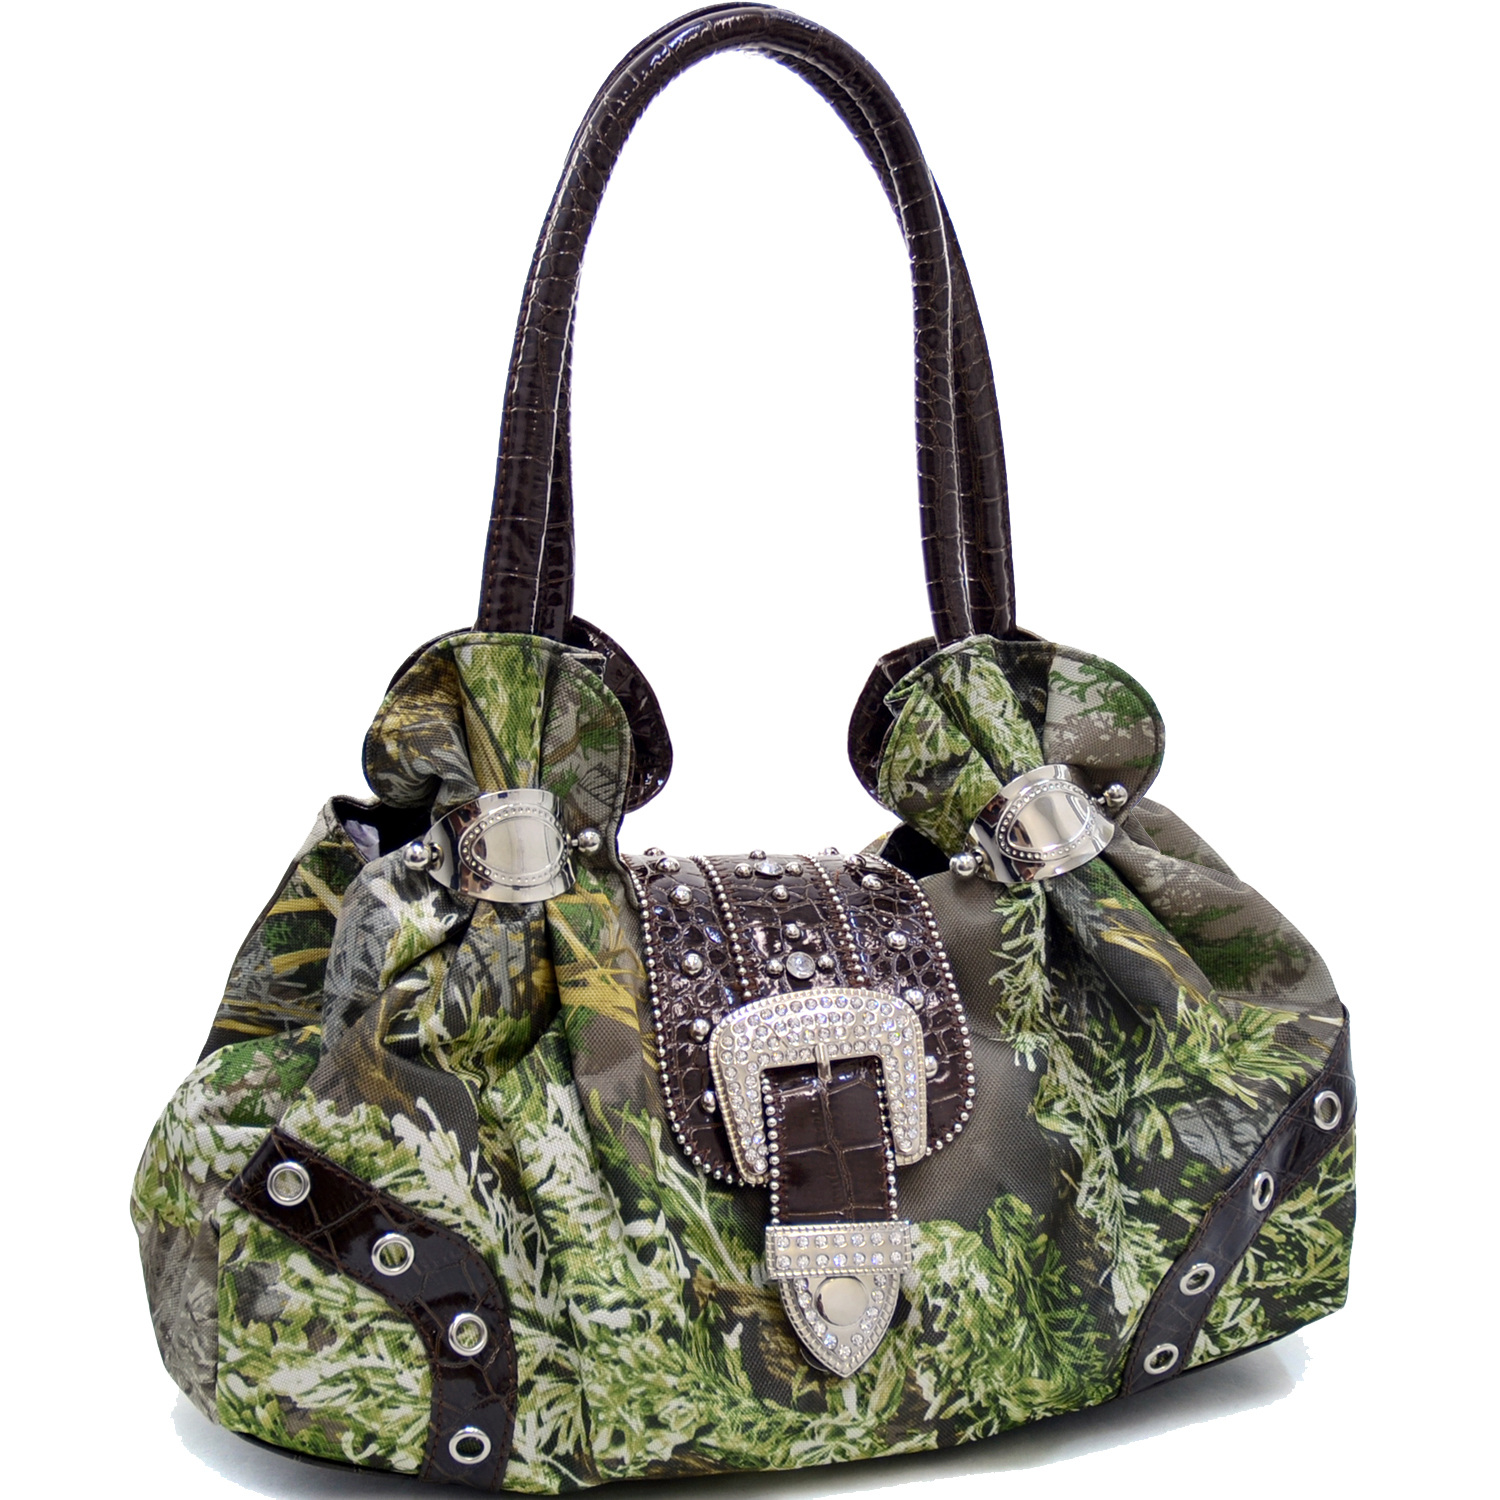 Dasein® Sholder Bag with Rhinestone Buckle Accent in Real Tree® Camouflage